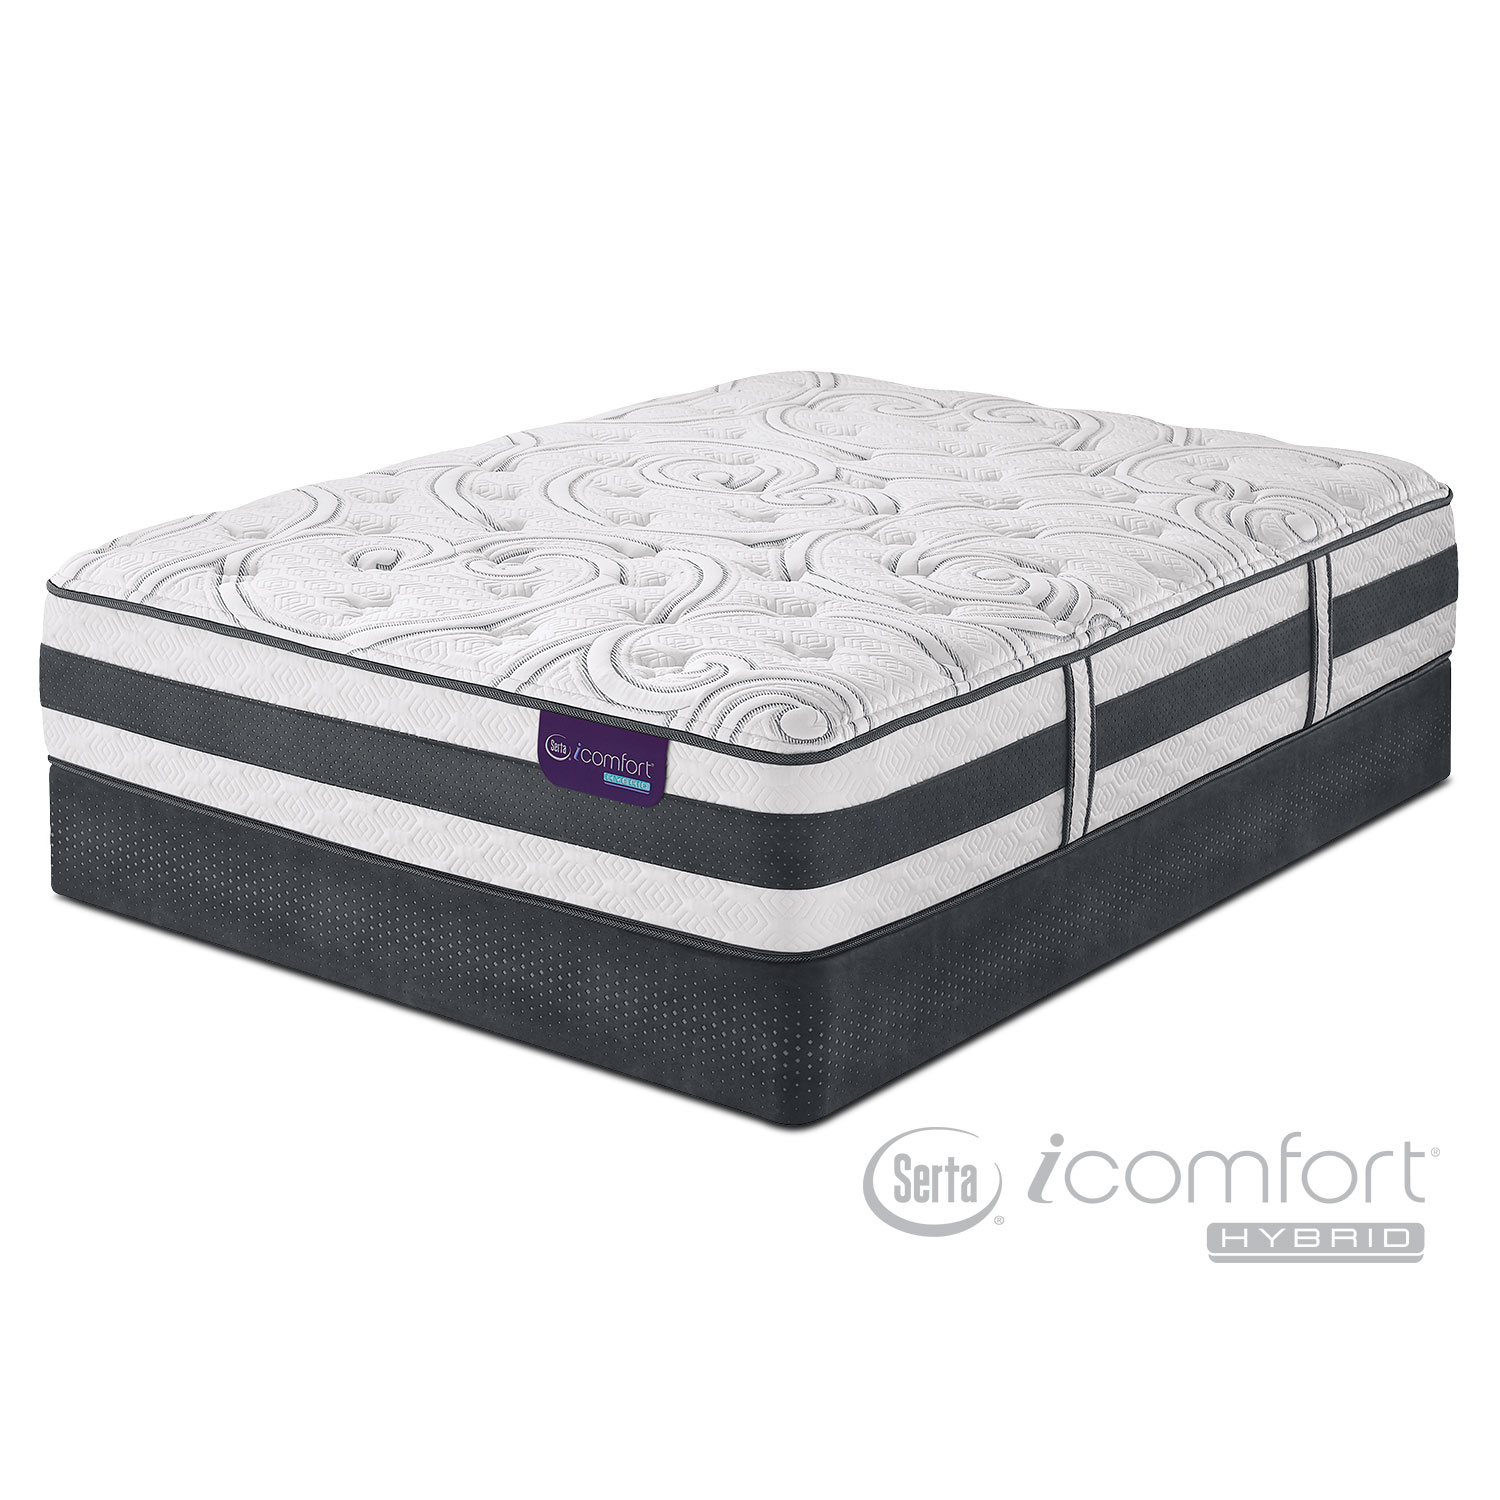 Mattresses and Bedding - Recognition Full Mattress/Low-Profile Foundation Set